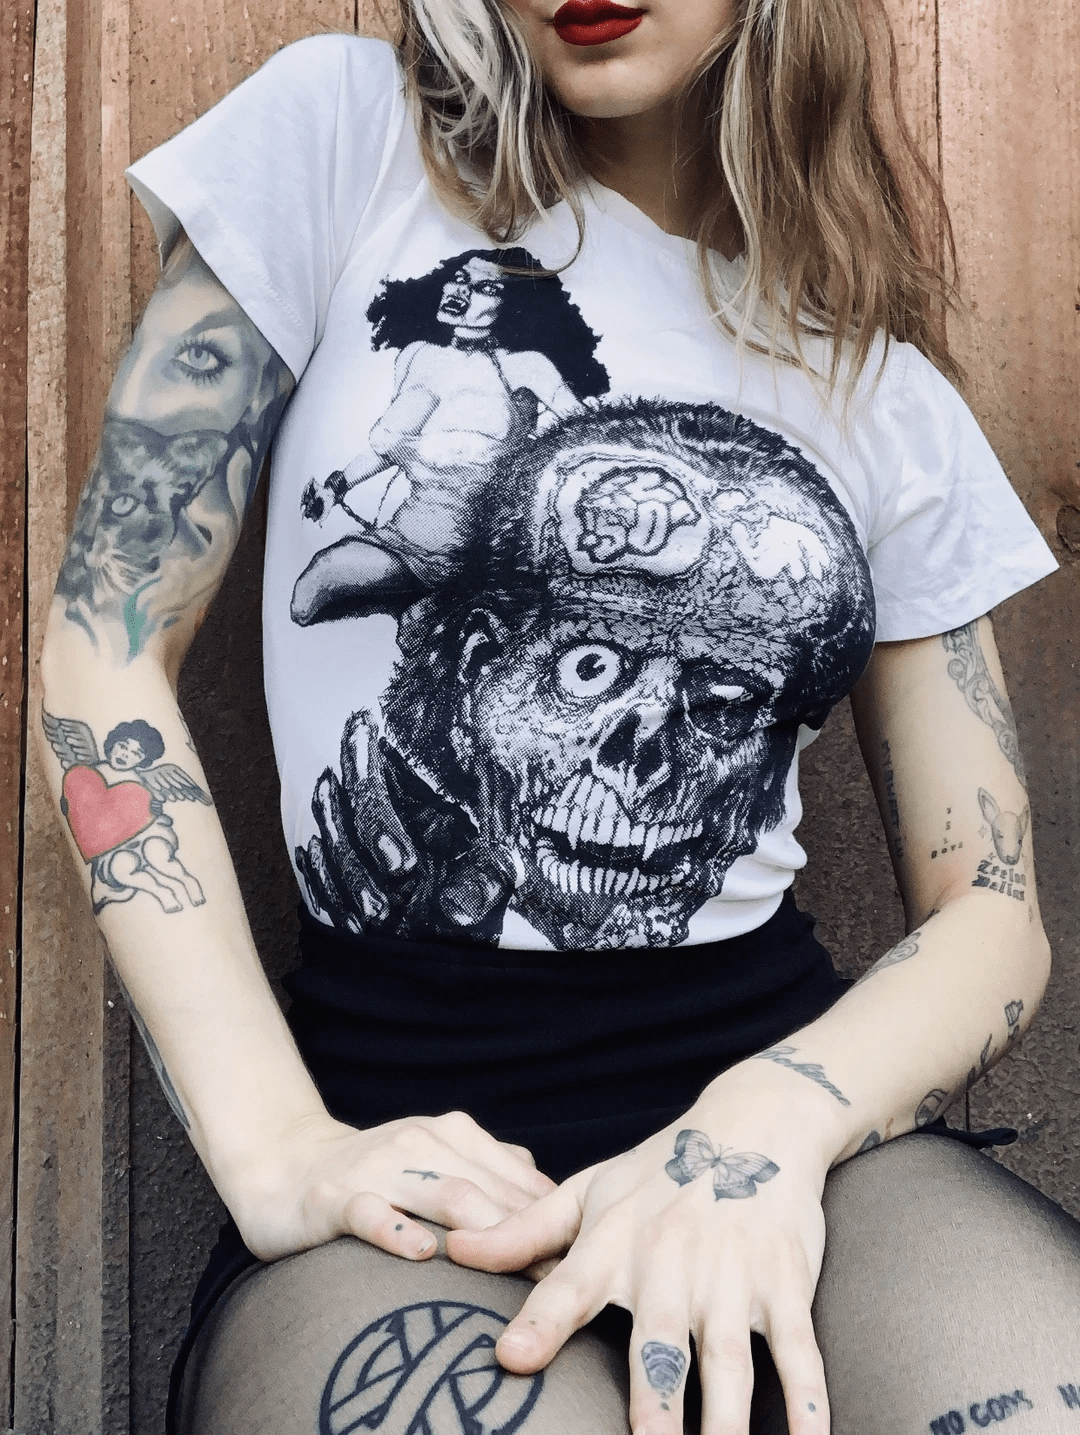 Can You Survive This Orgy of the Living Dead? A Triple Avalanche of Grisly Horror T-Shirts from Local Boogeyman!